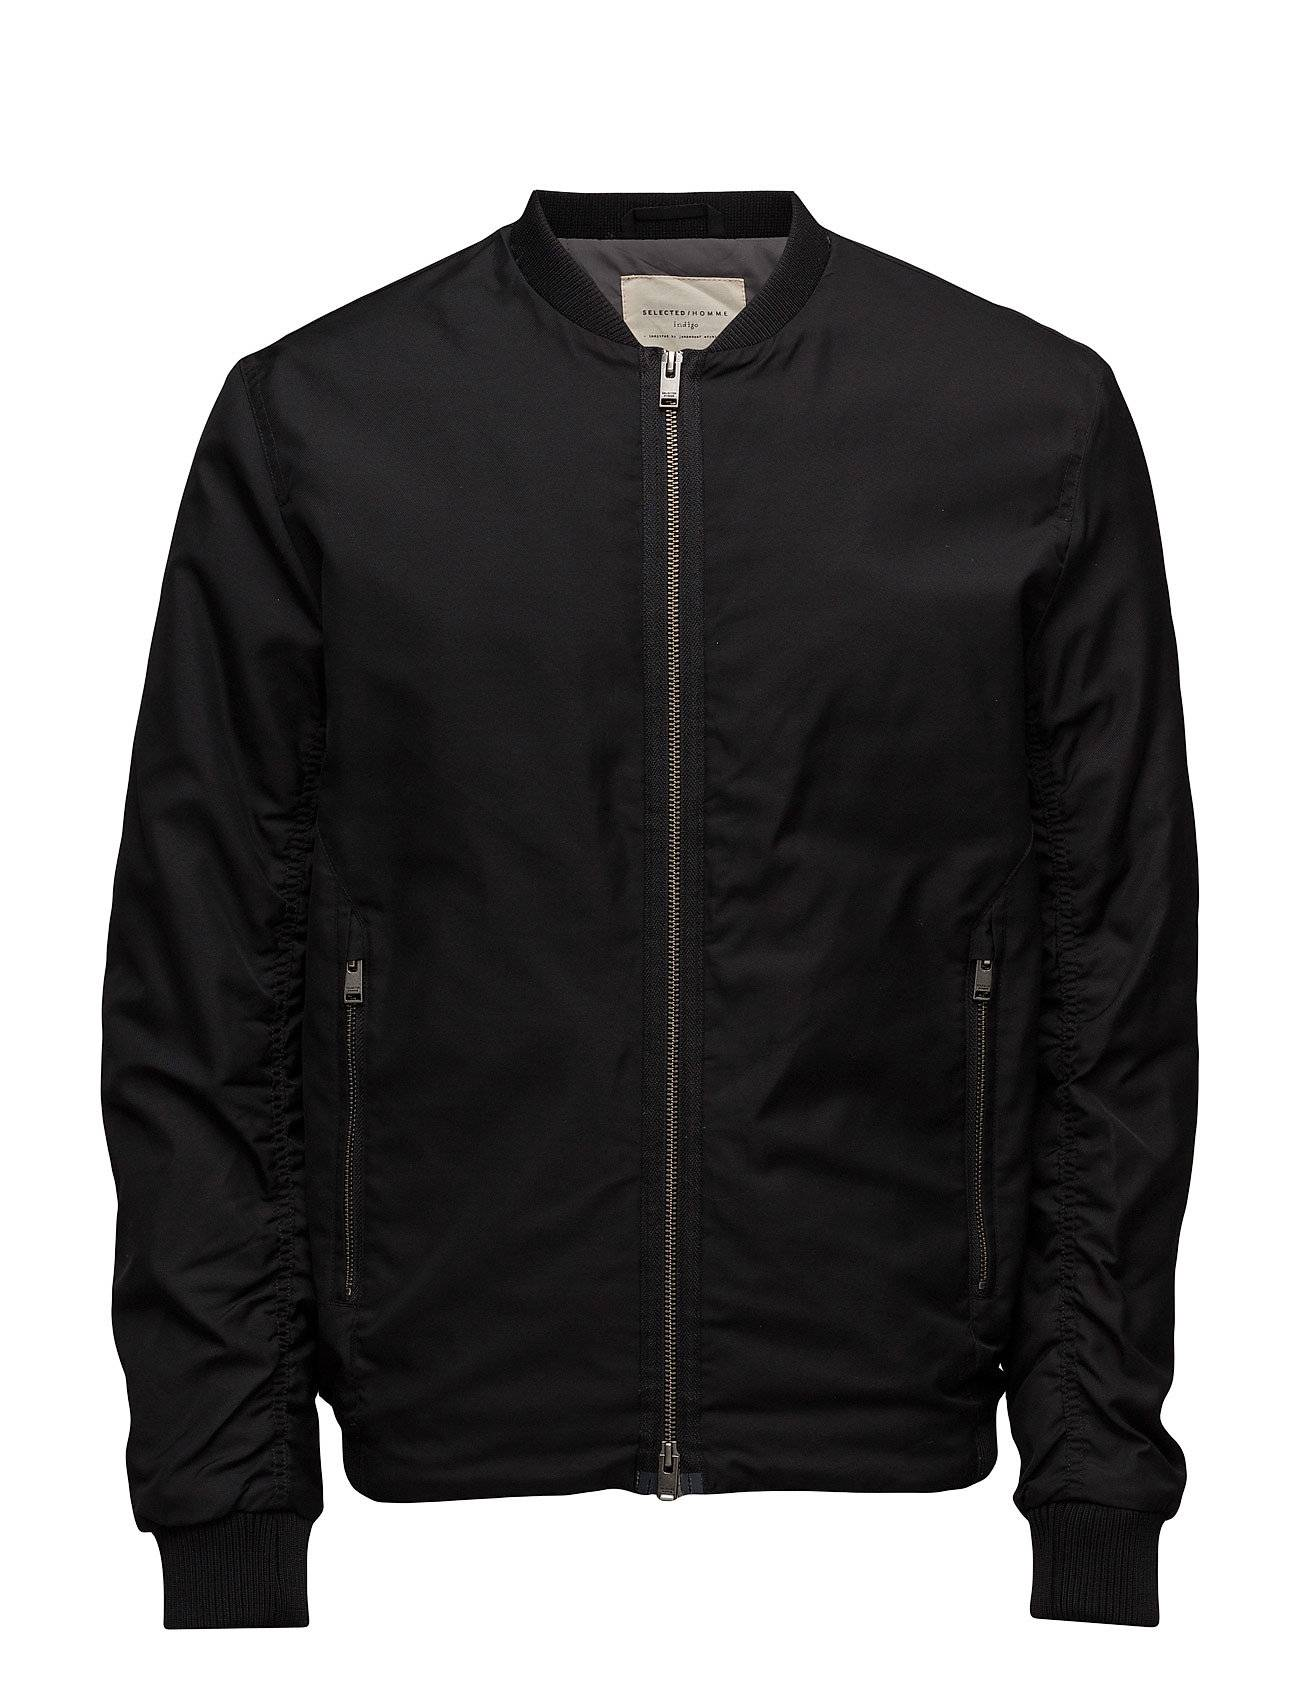 Selected Homme Shnnewlight Bomber Jacket